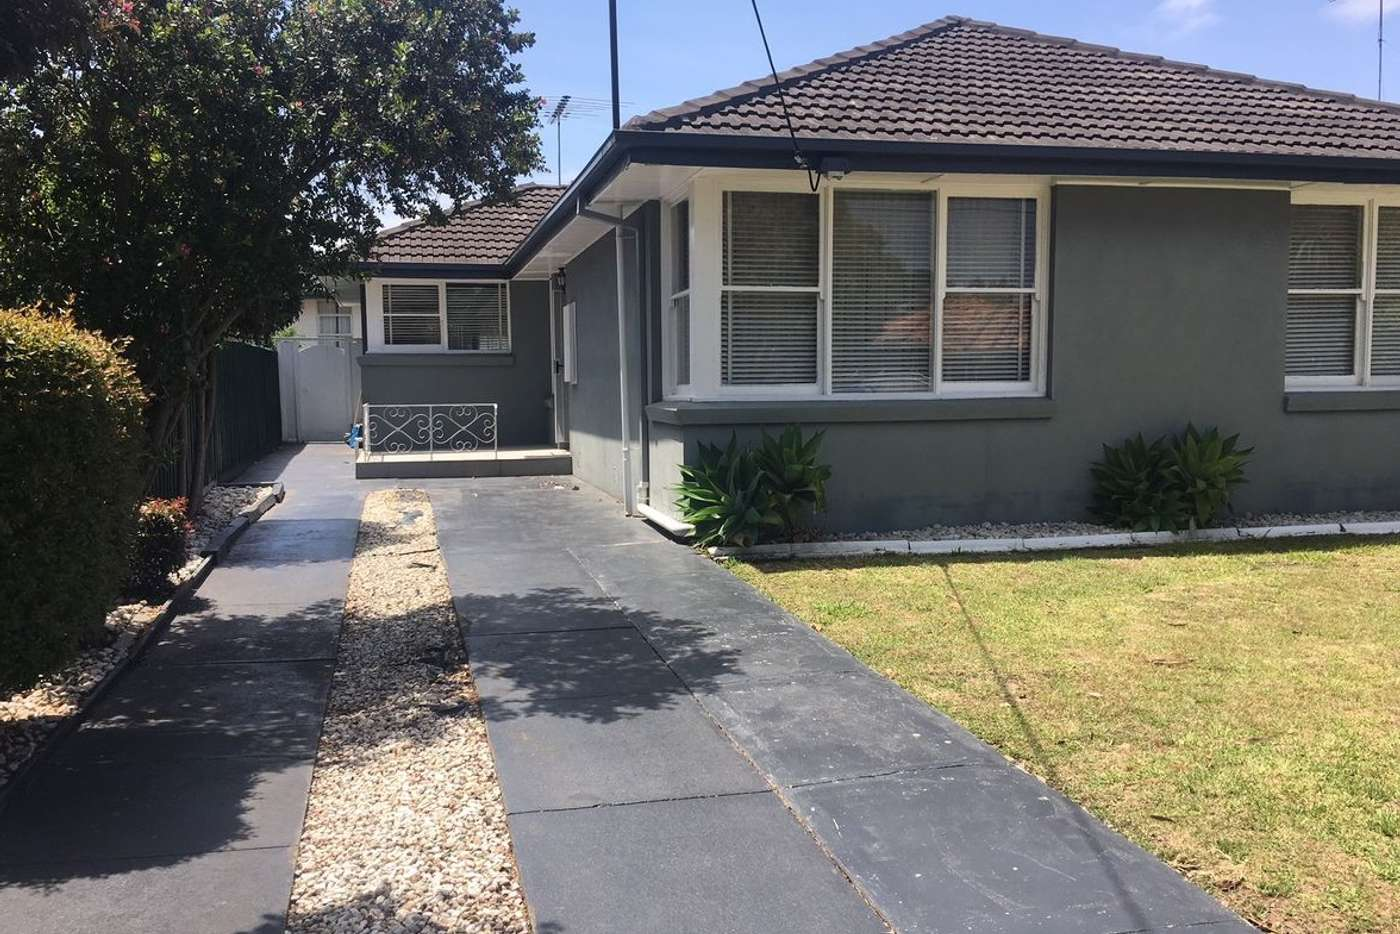 Main view of Homely house listing, 55 Severn Street, Yarraville VIC 3013